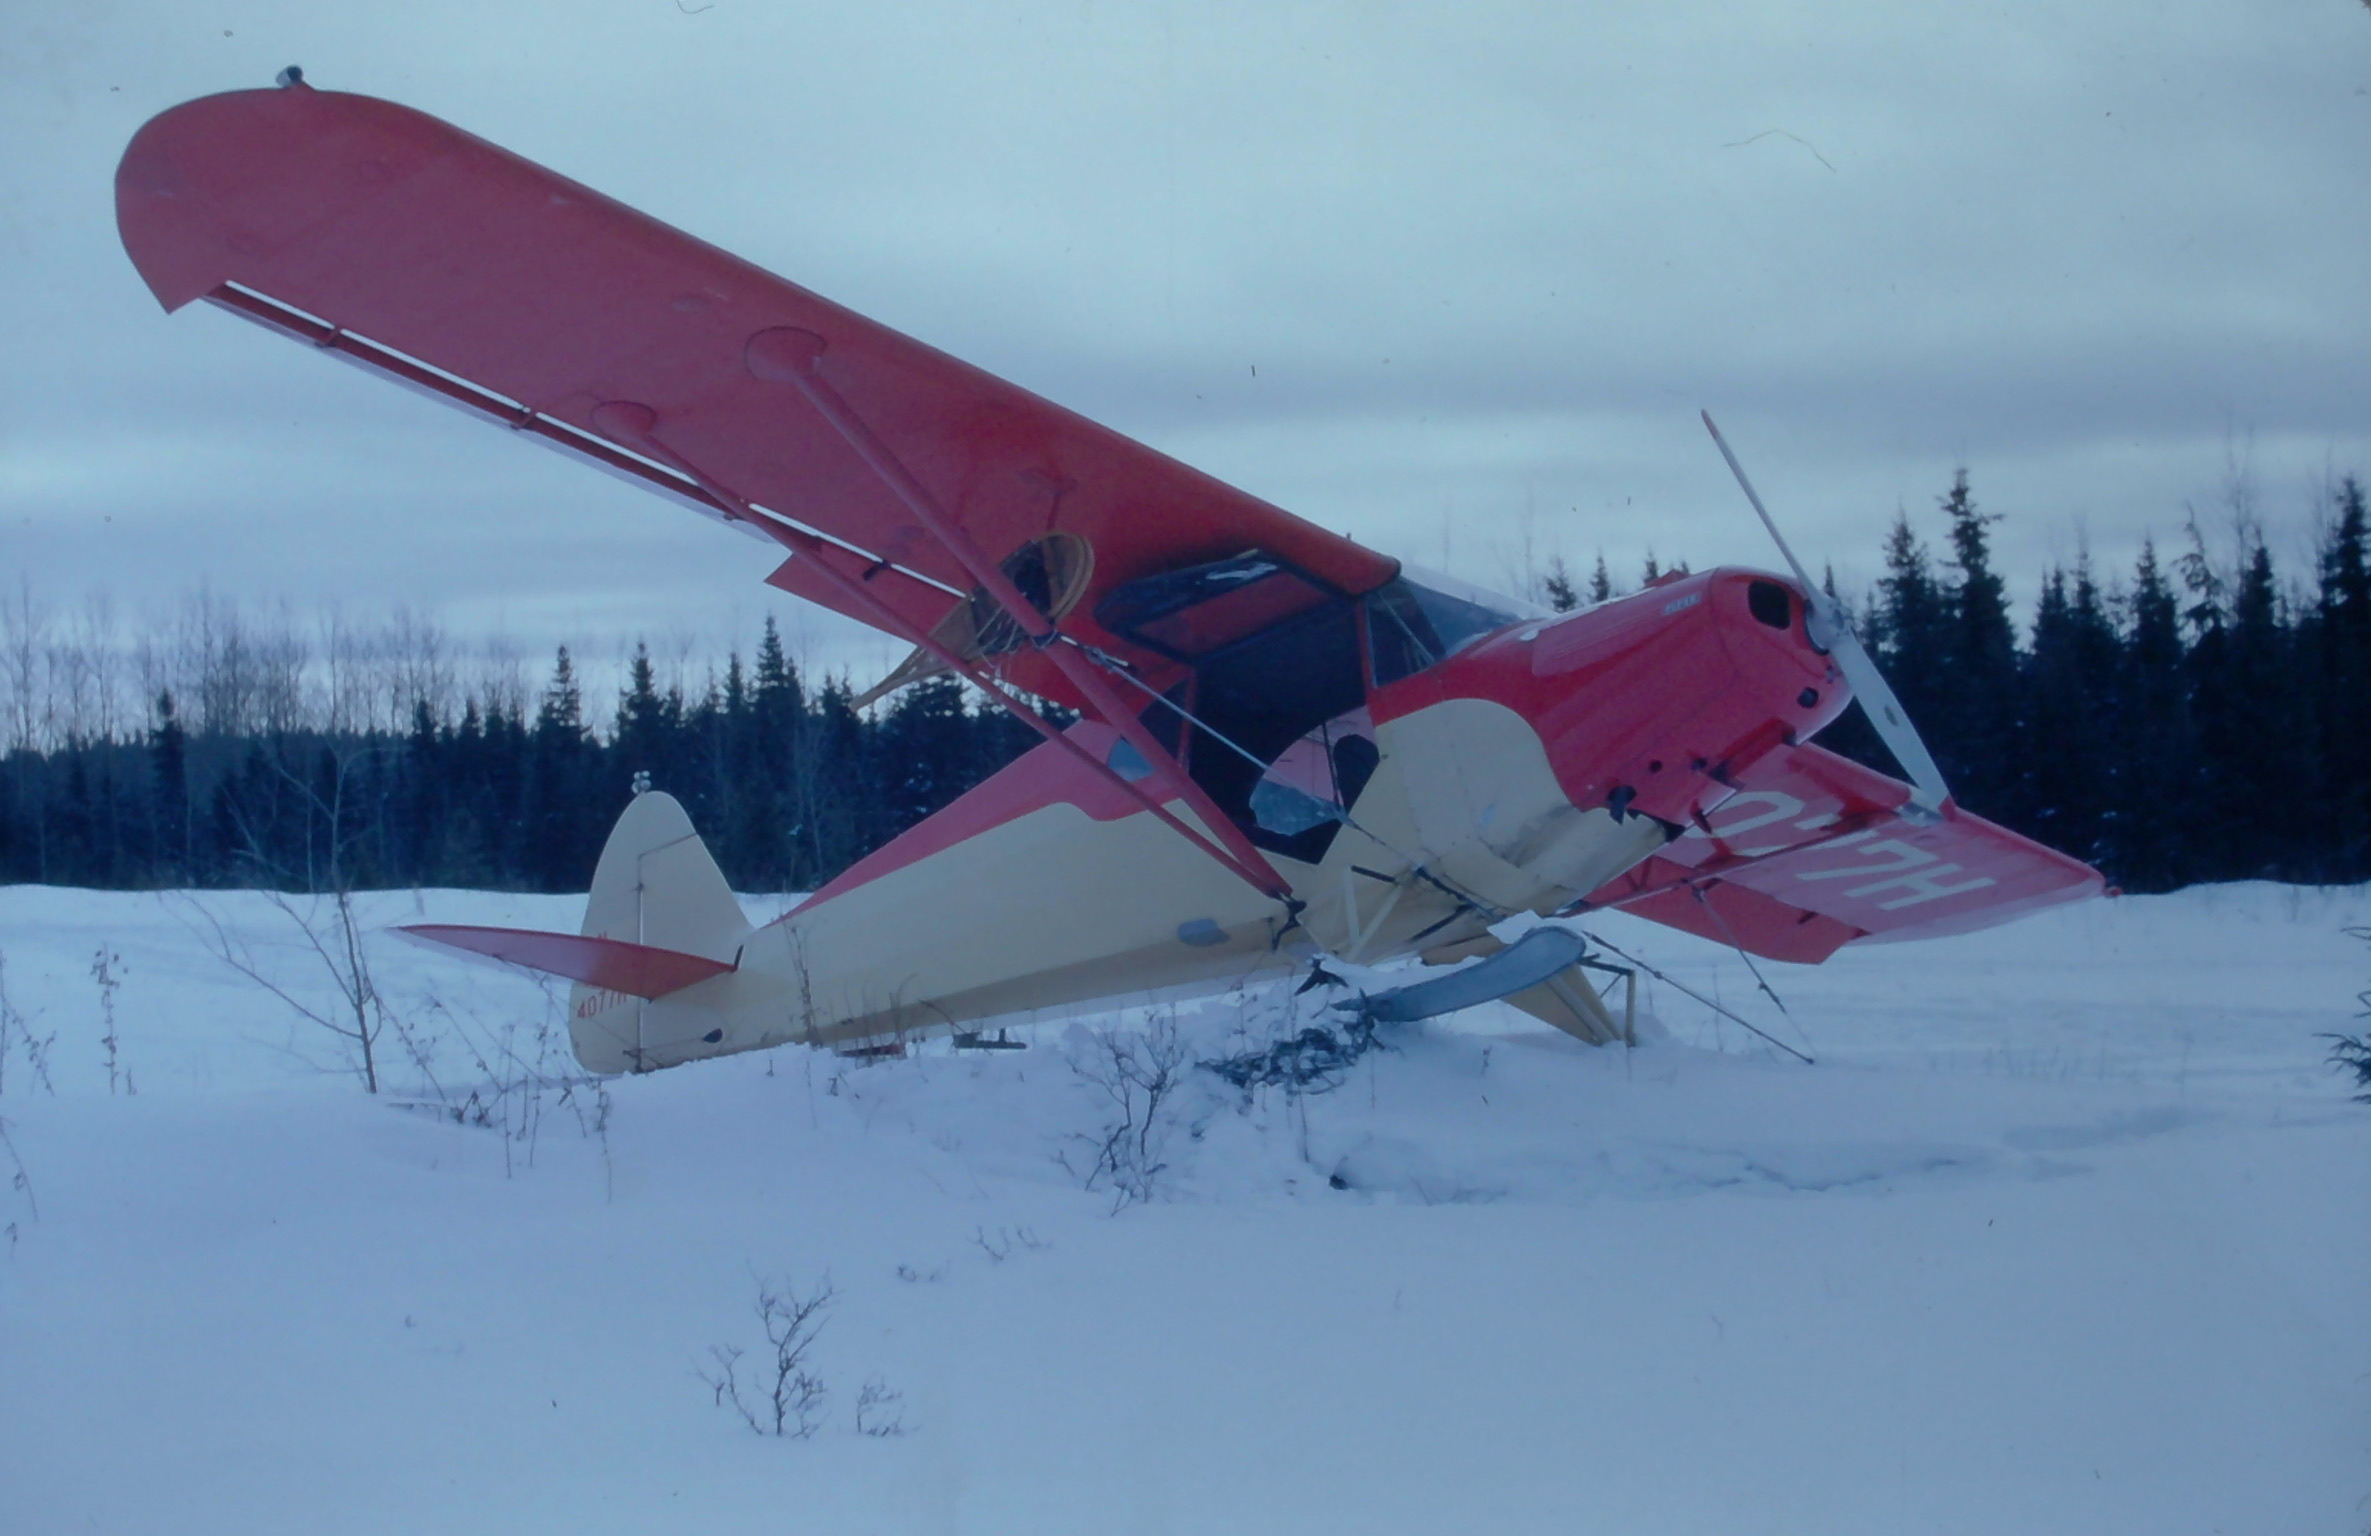 MAC'S PIPER PA-12 AFTER LANDING ON THE ROUGH DAAQUAM AIR STRIP